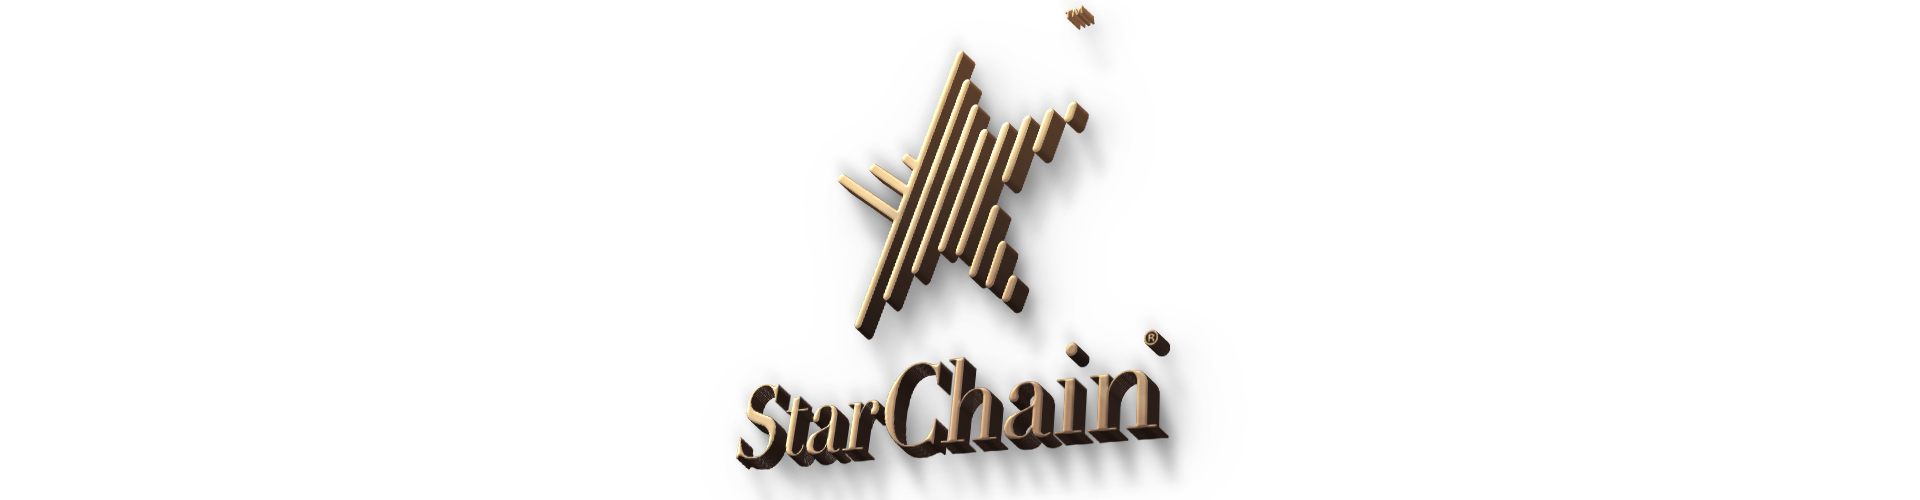 StarChainLogo.png